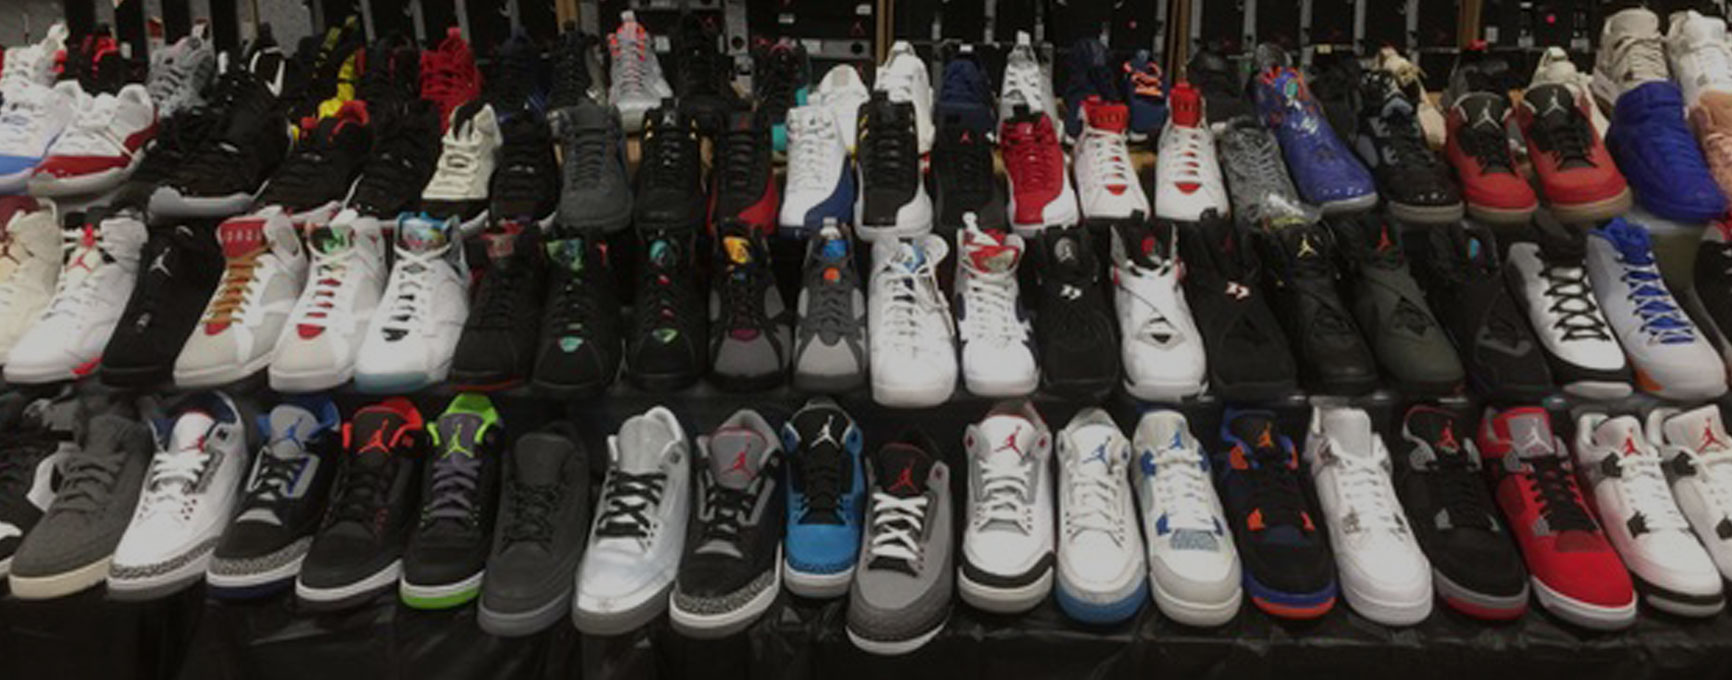 Pawn Shops That Buy Shoes